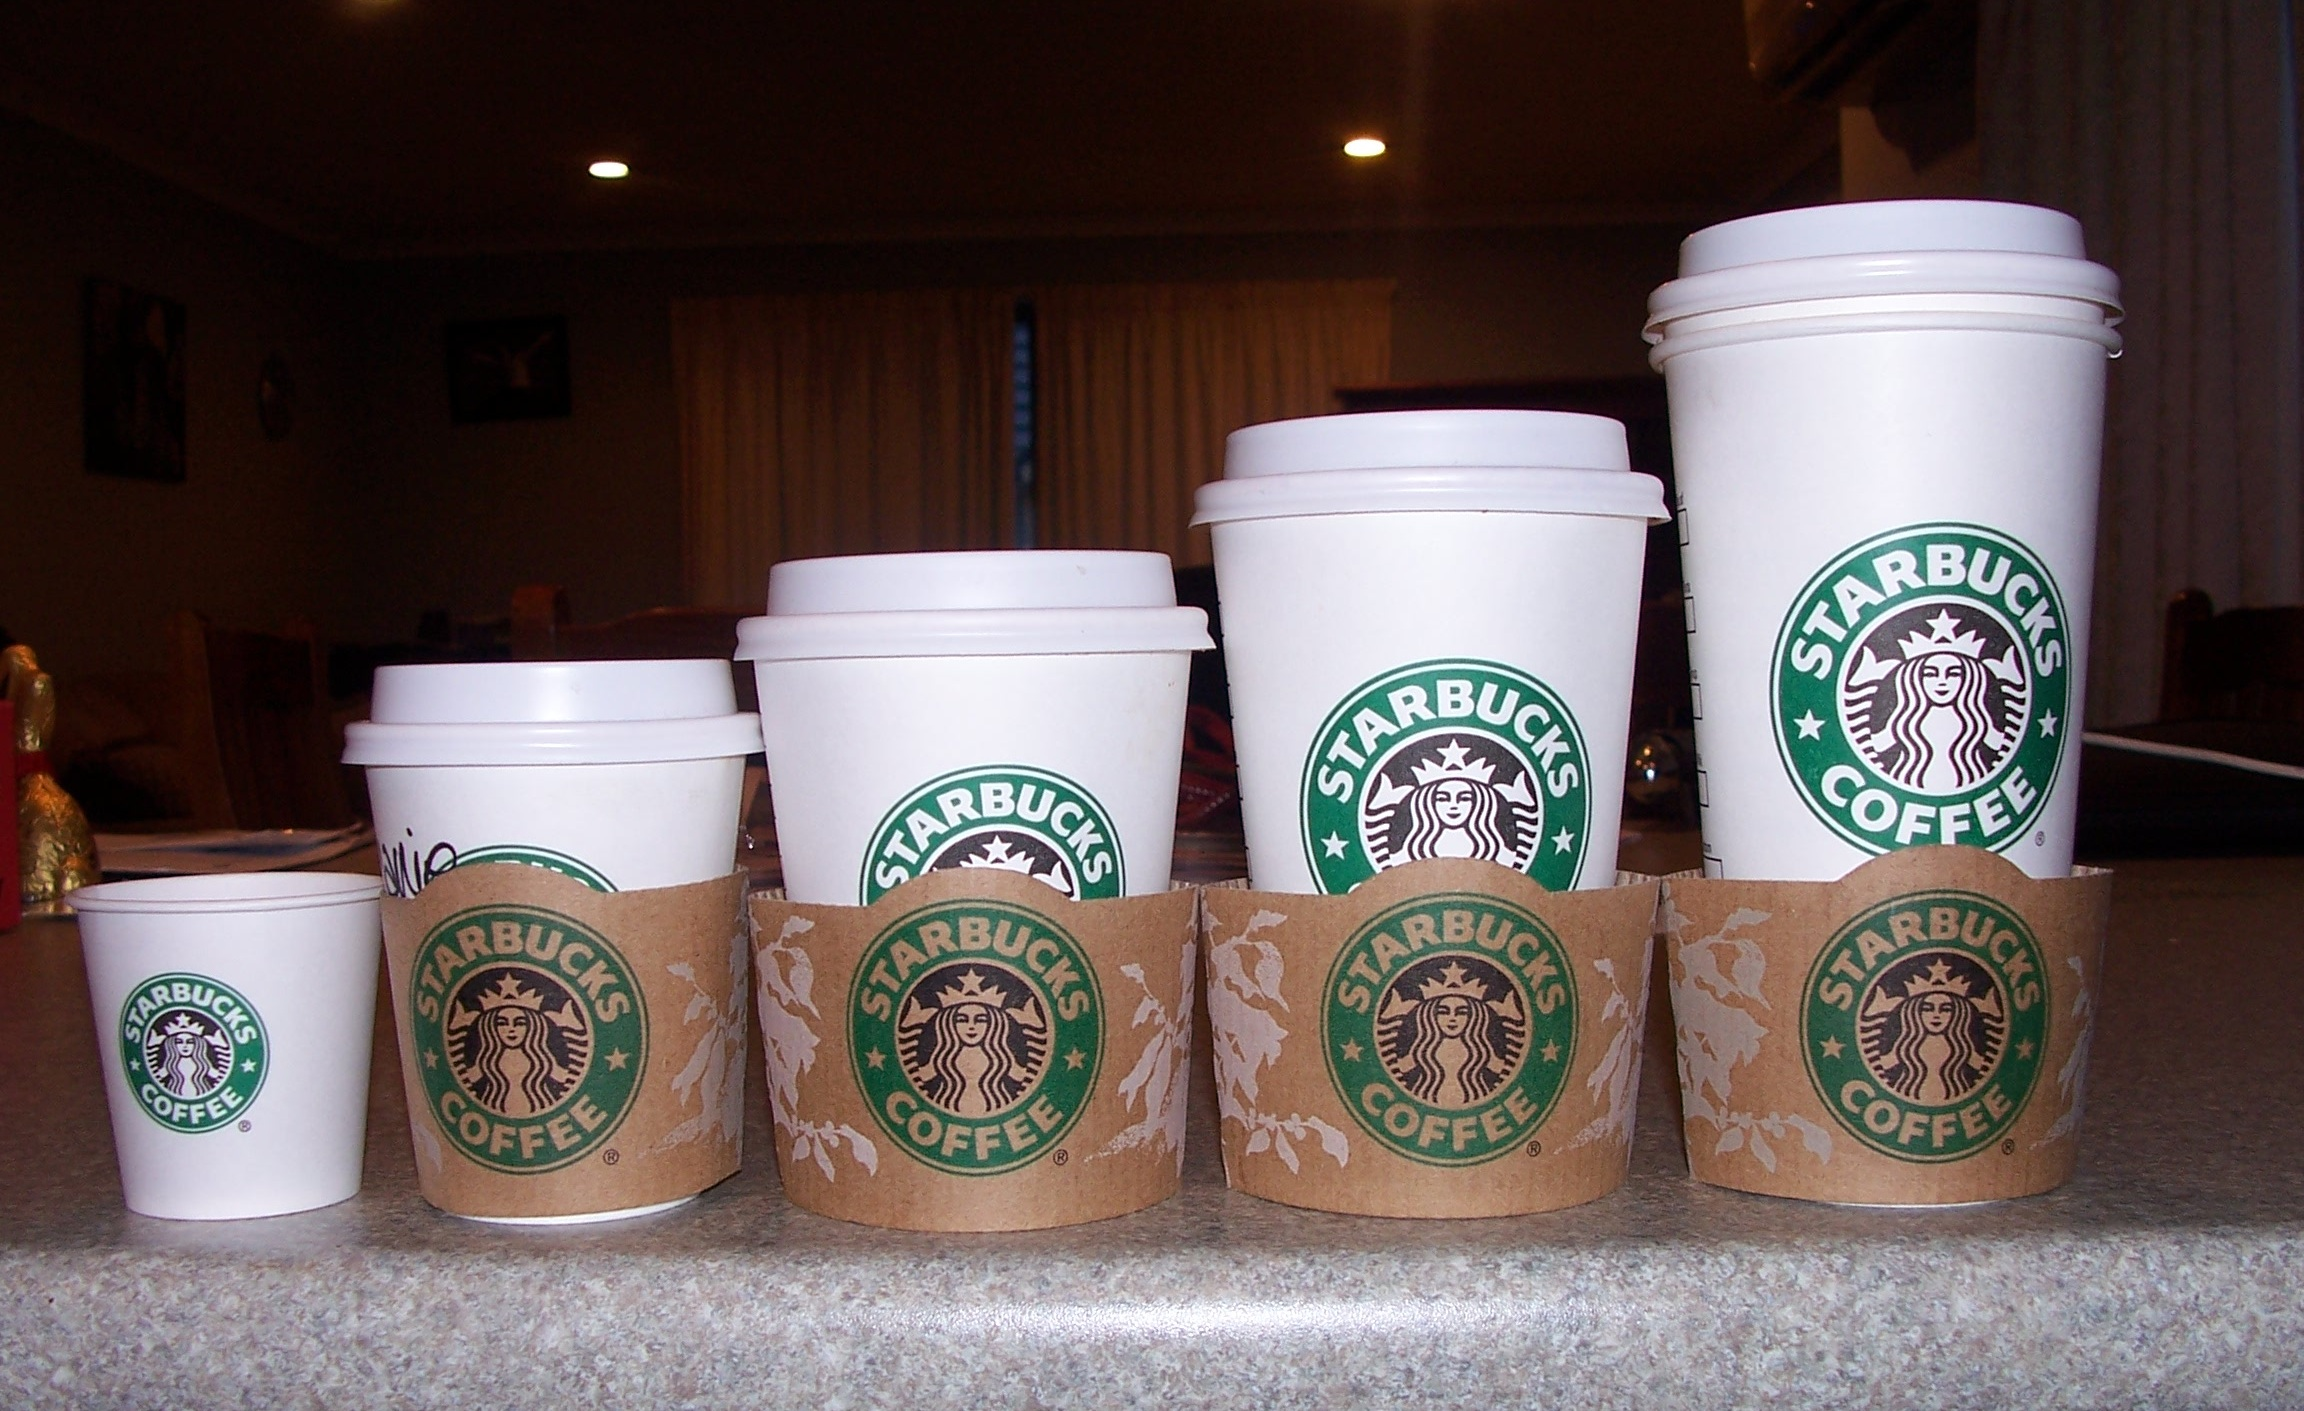 Starbucks_Coffee_mediarun_com